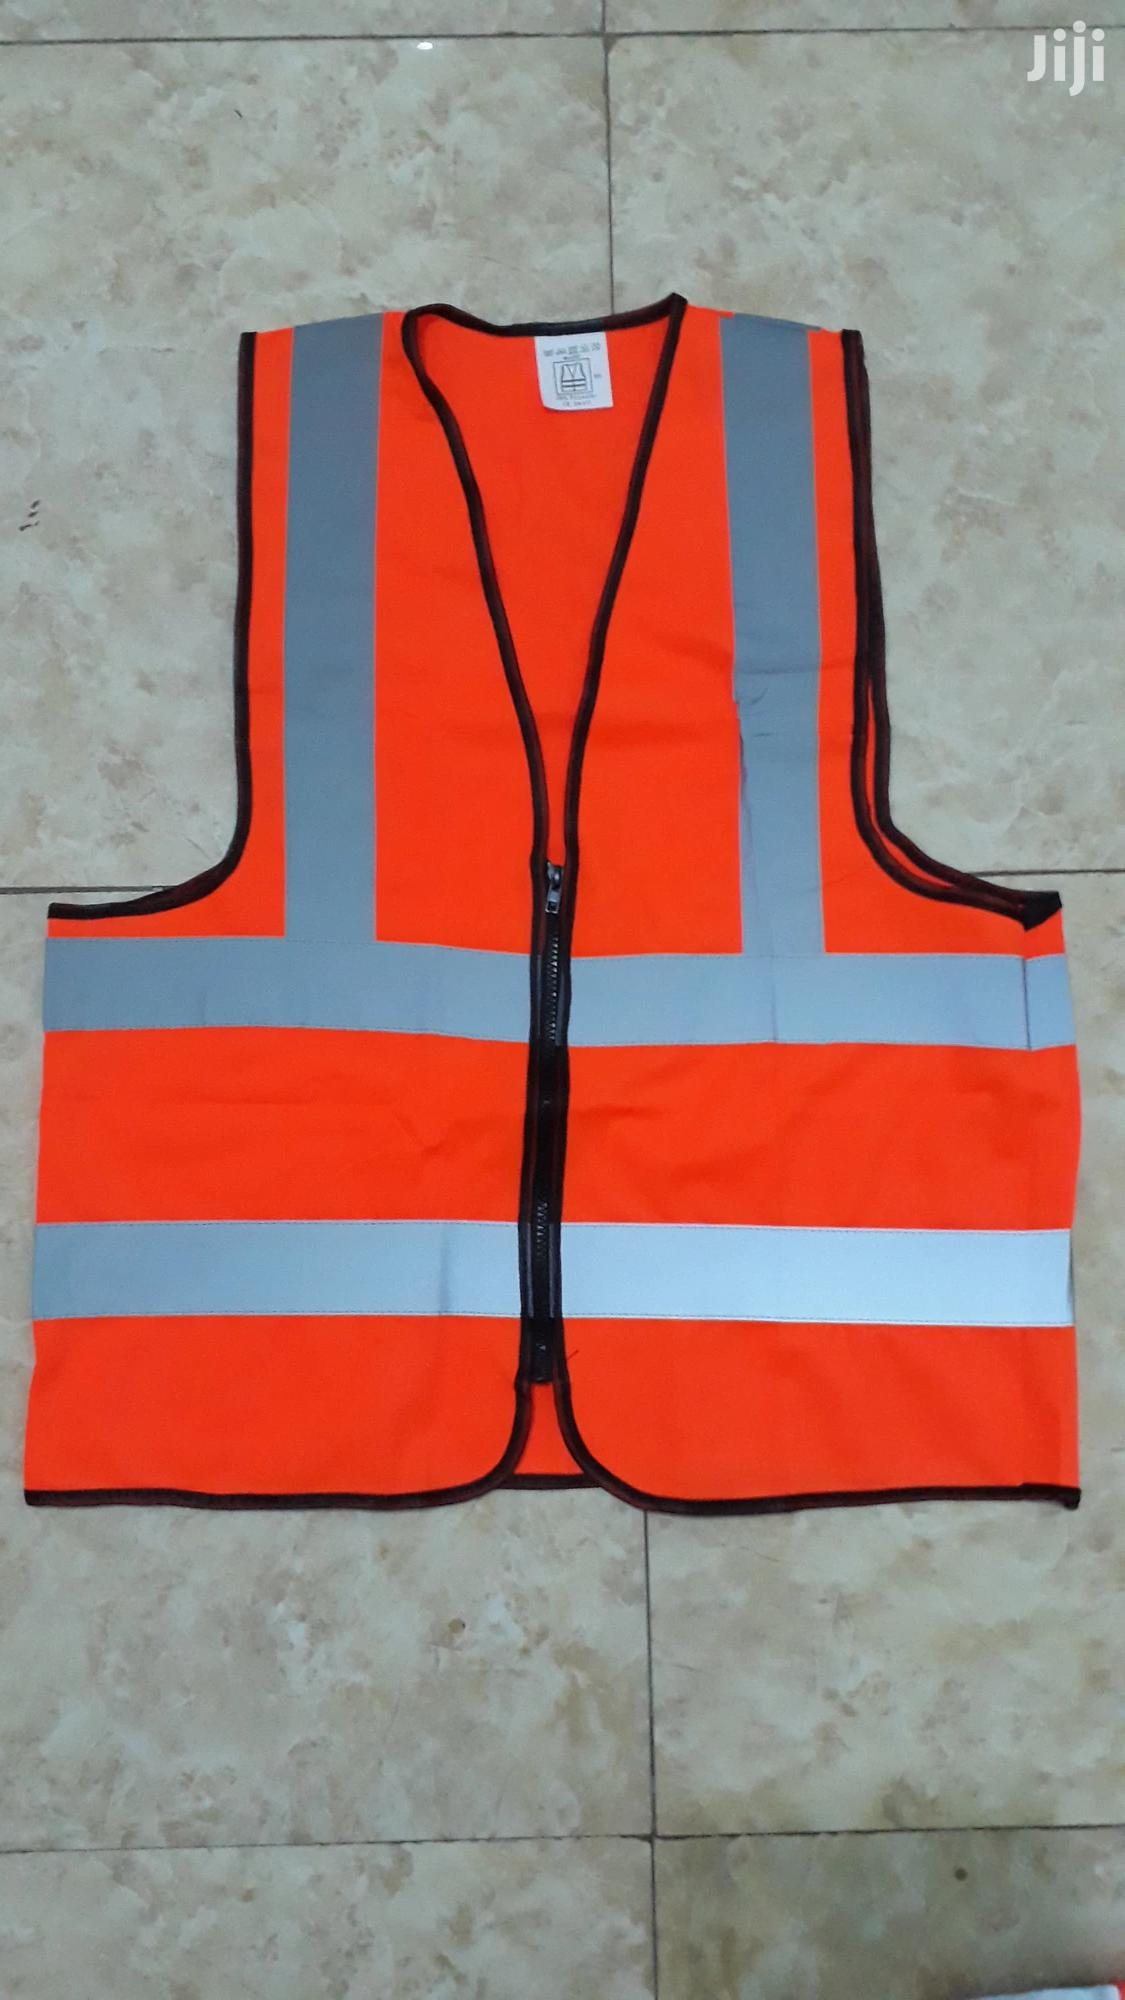 Light Duty Reflective Vest | Safety Equipment for sale in Tema Metropolitan, Greater Accra, Ghana